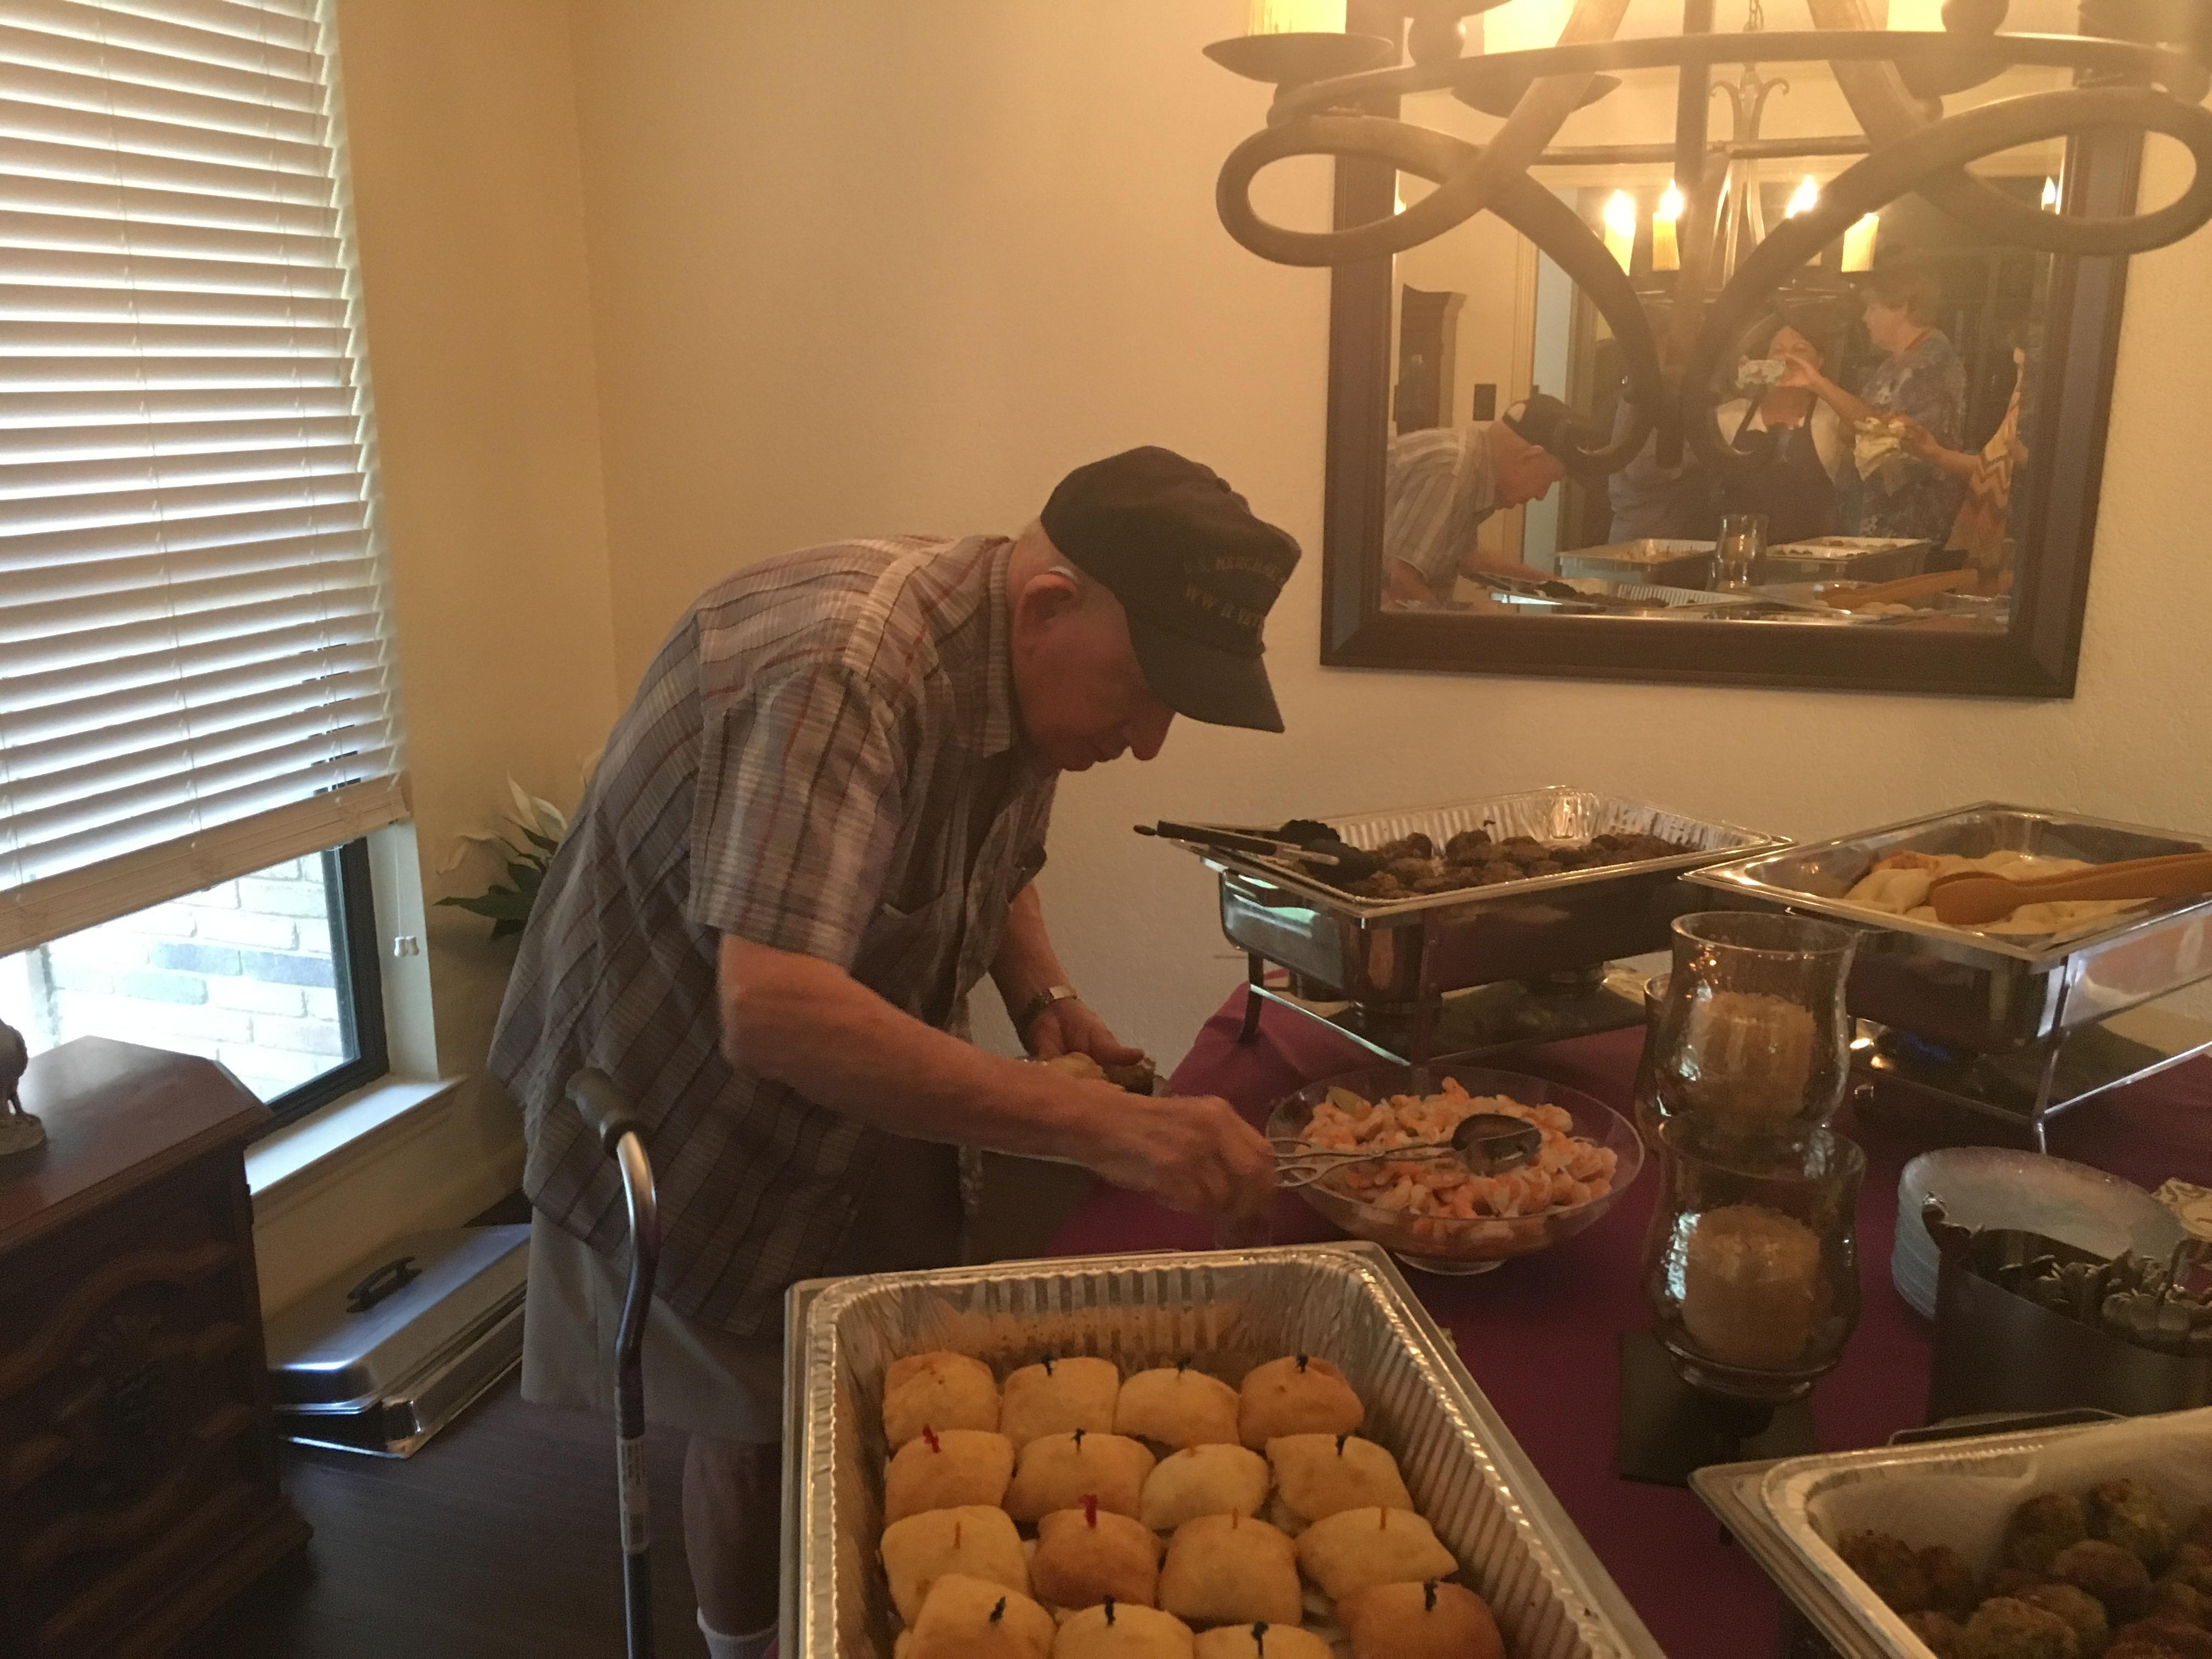 Jc Cooks Personal Chef And Catering Service In San Antonio